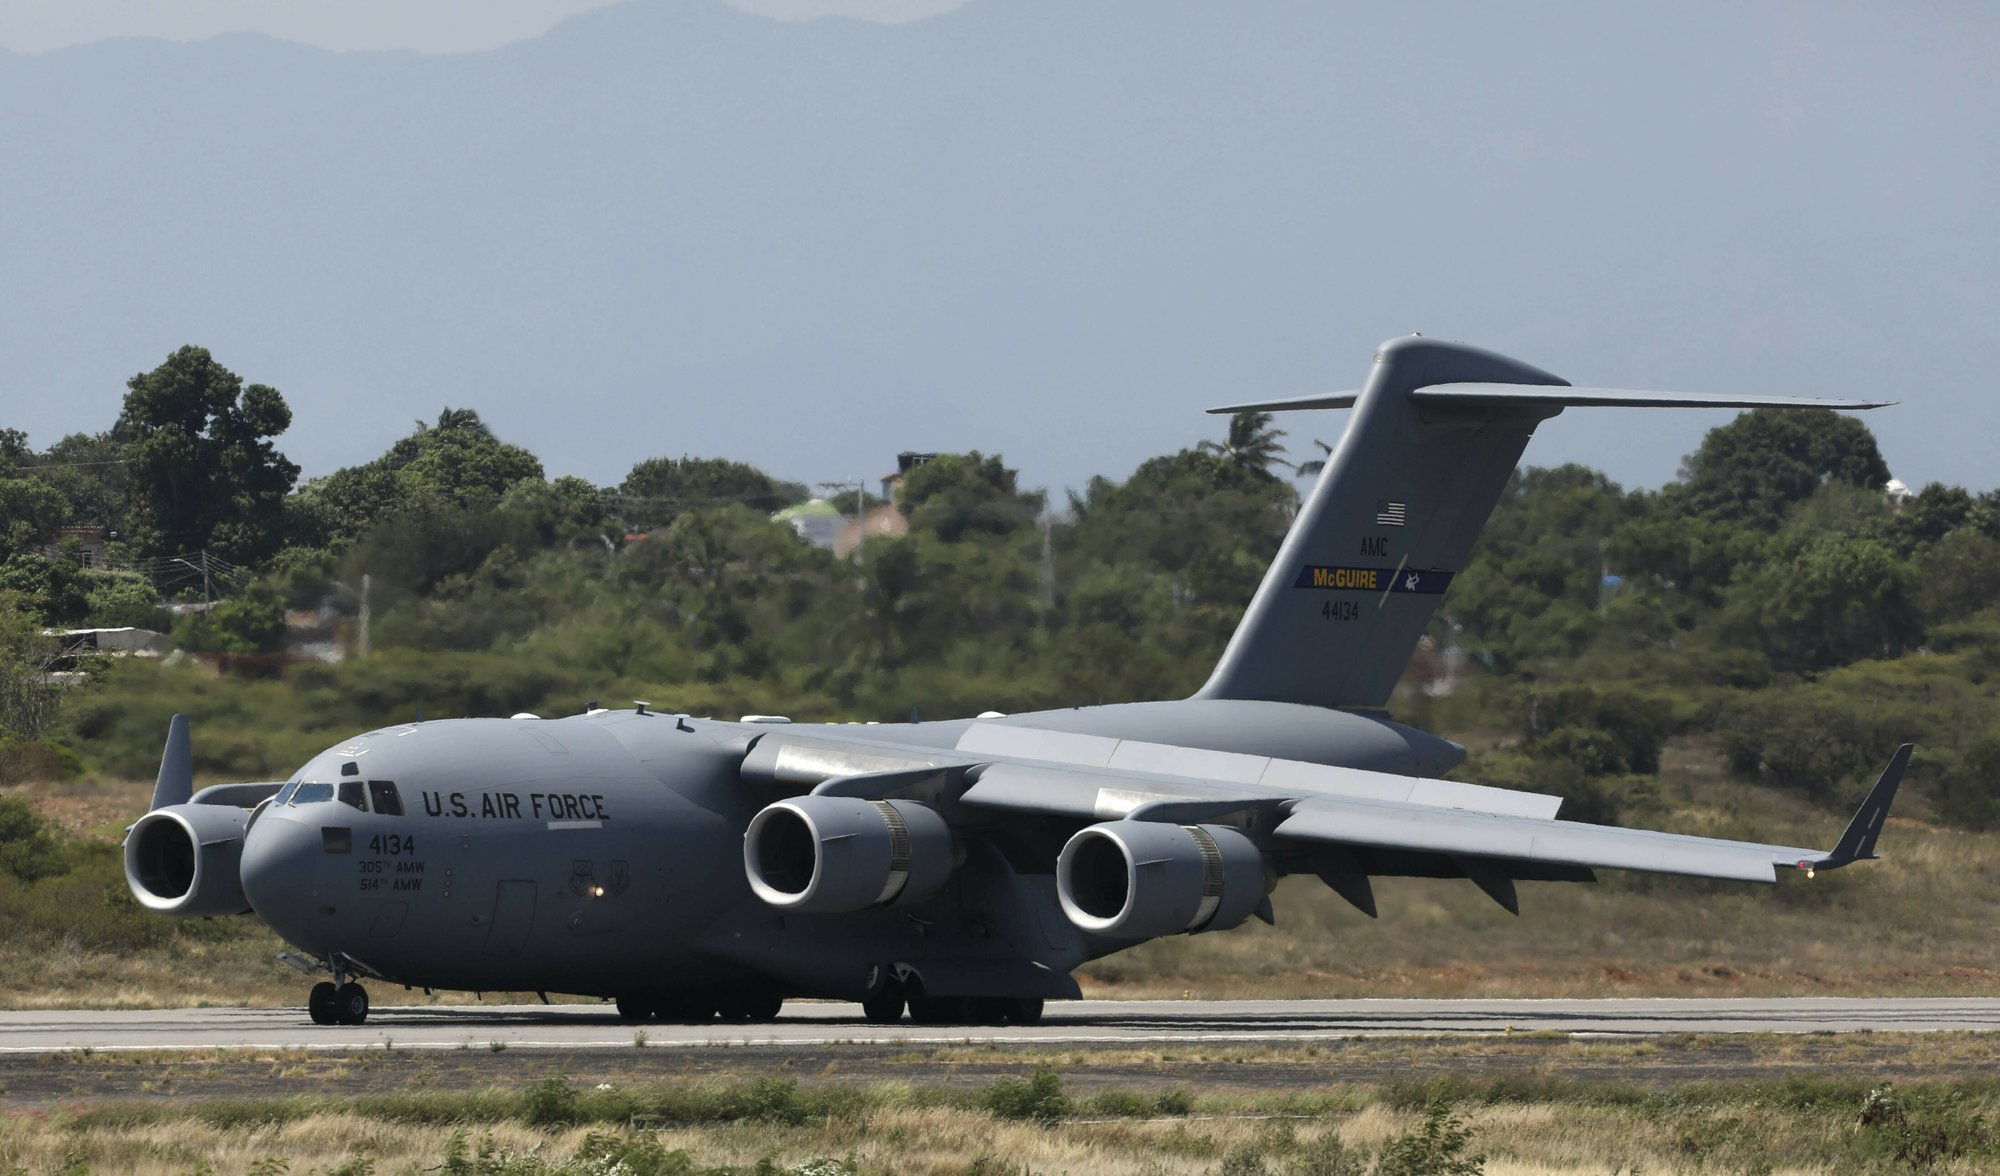 An United States Air Force C-17 cargo plane loaded with humanitarian aid lands at Camilo Daza airport in Cucuta, Colombia, on Saturday, Feb. 16, 2019. Photo: AP